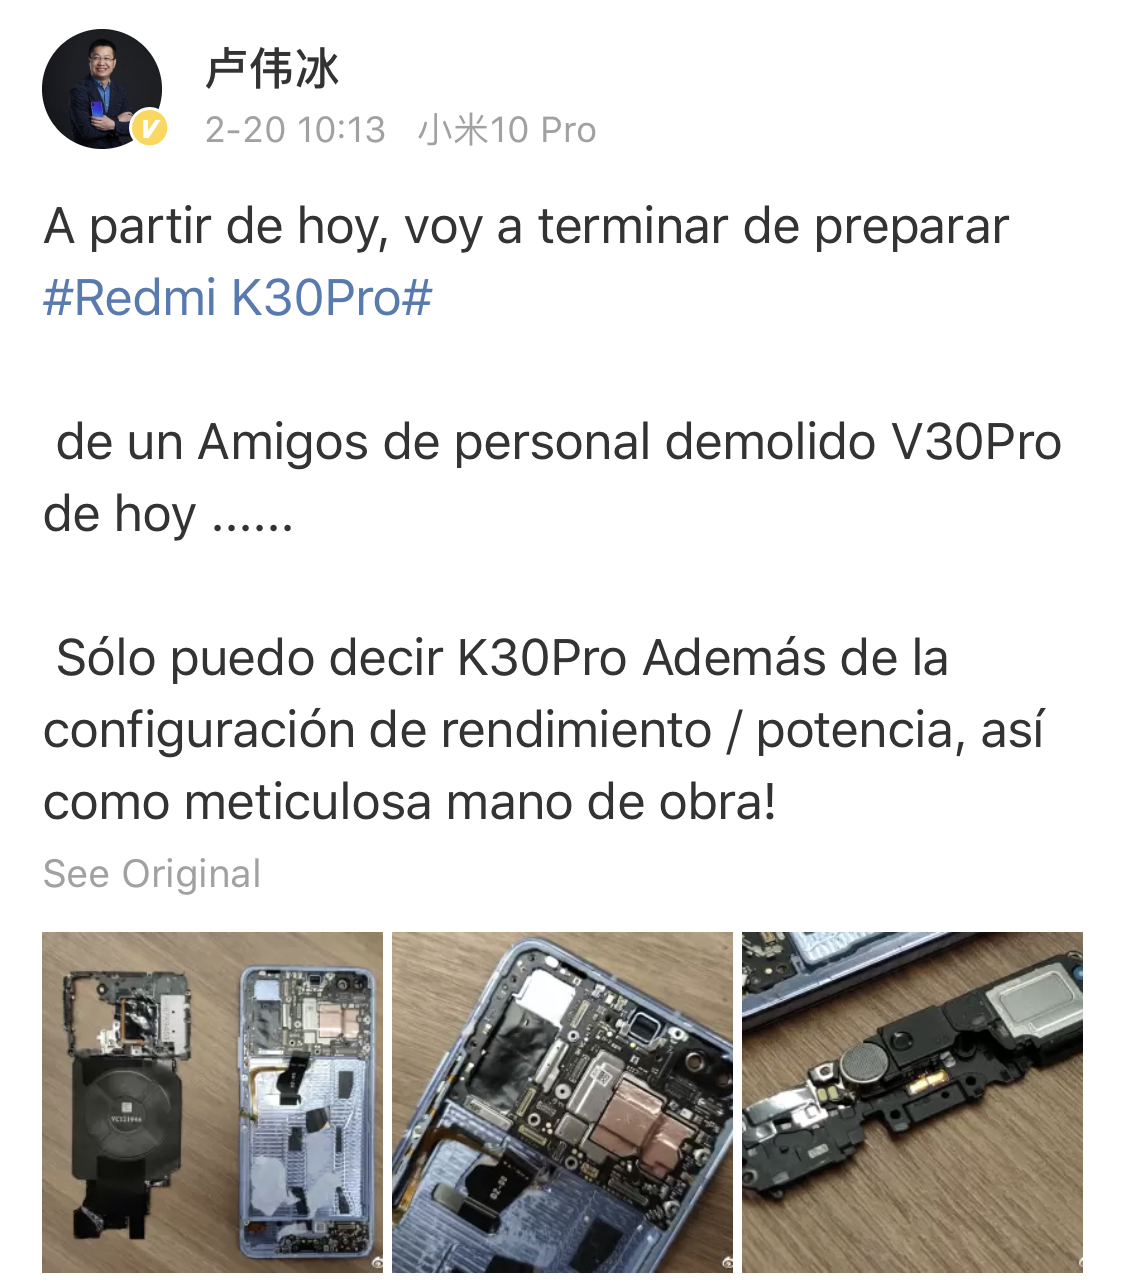 The expected Redmi K30 Pro could integrate wireless charging being very similar to the Honor V30 Pro